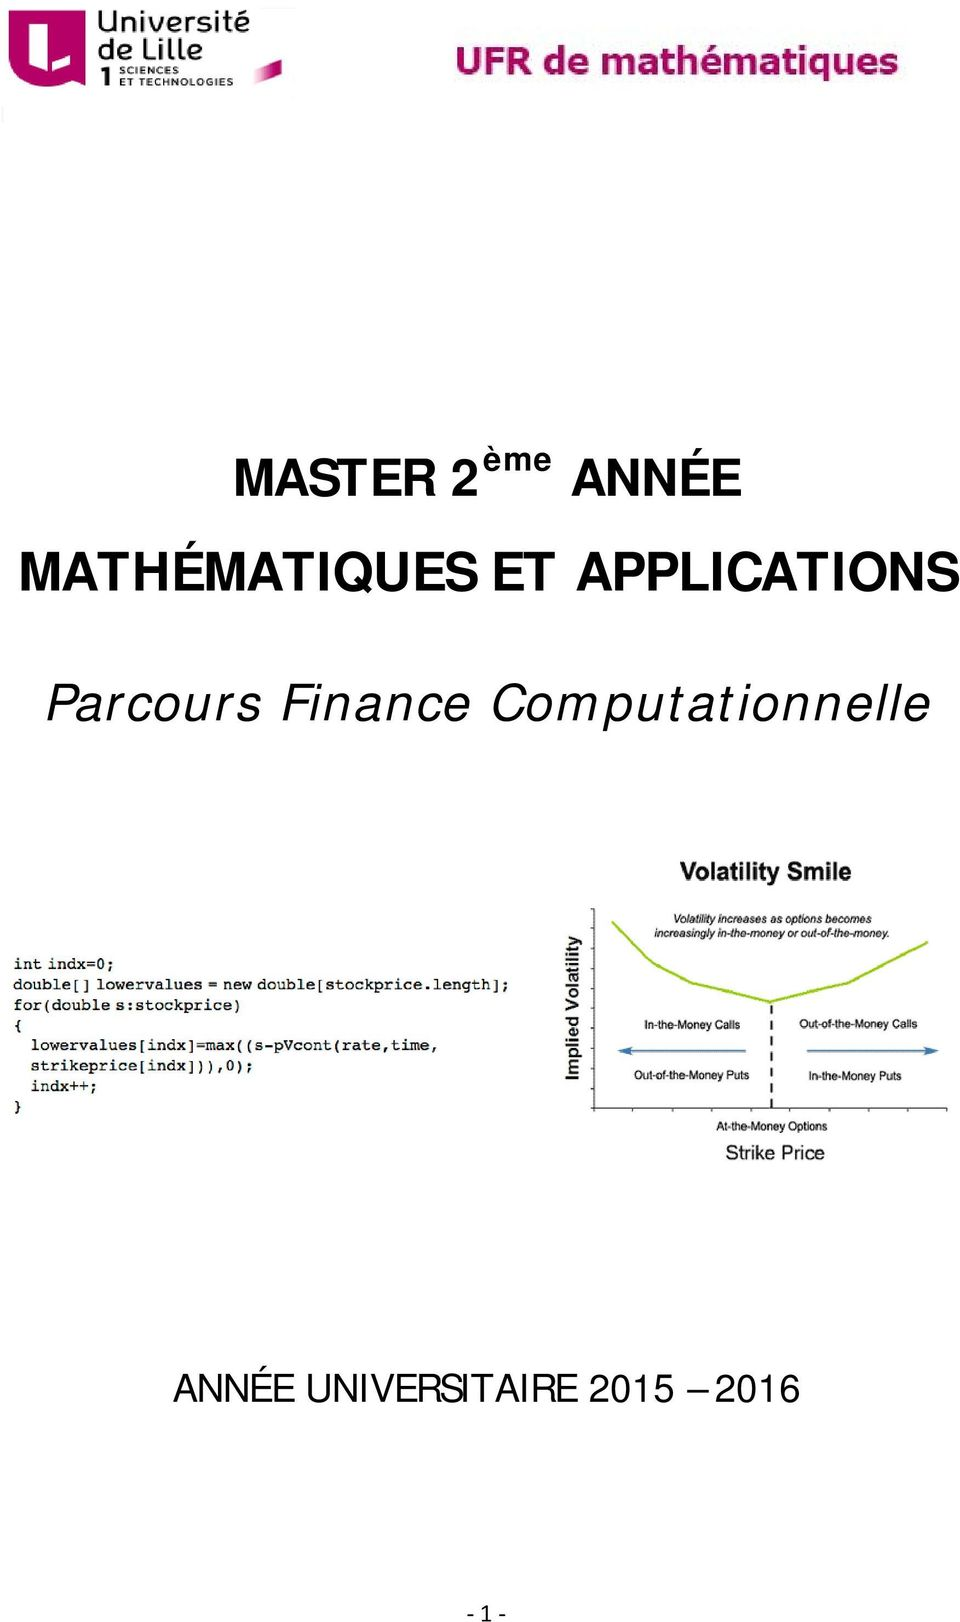 APPLICATIONS Parcours